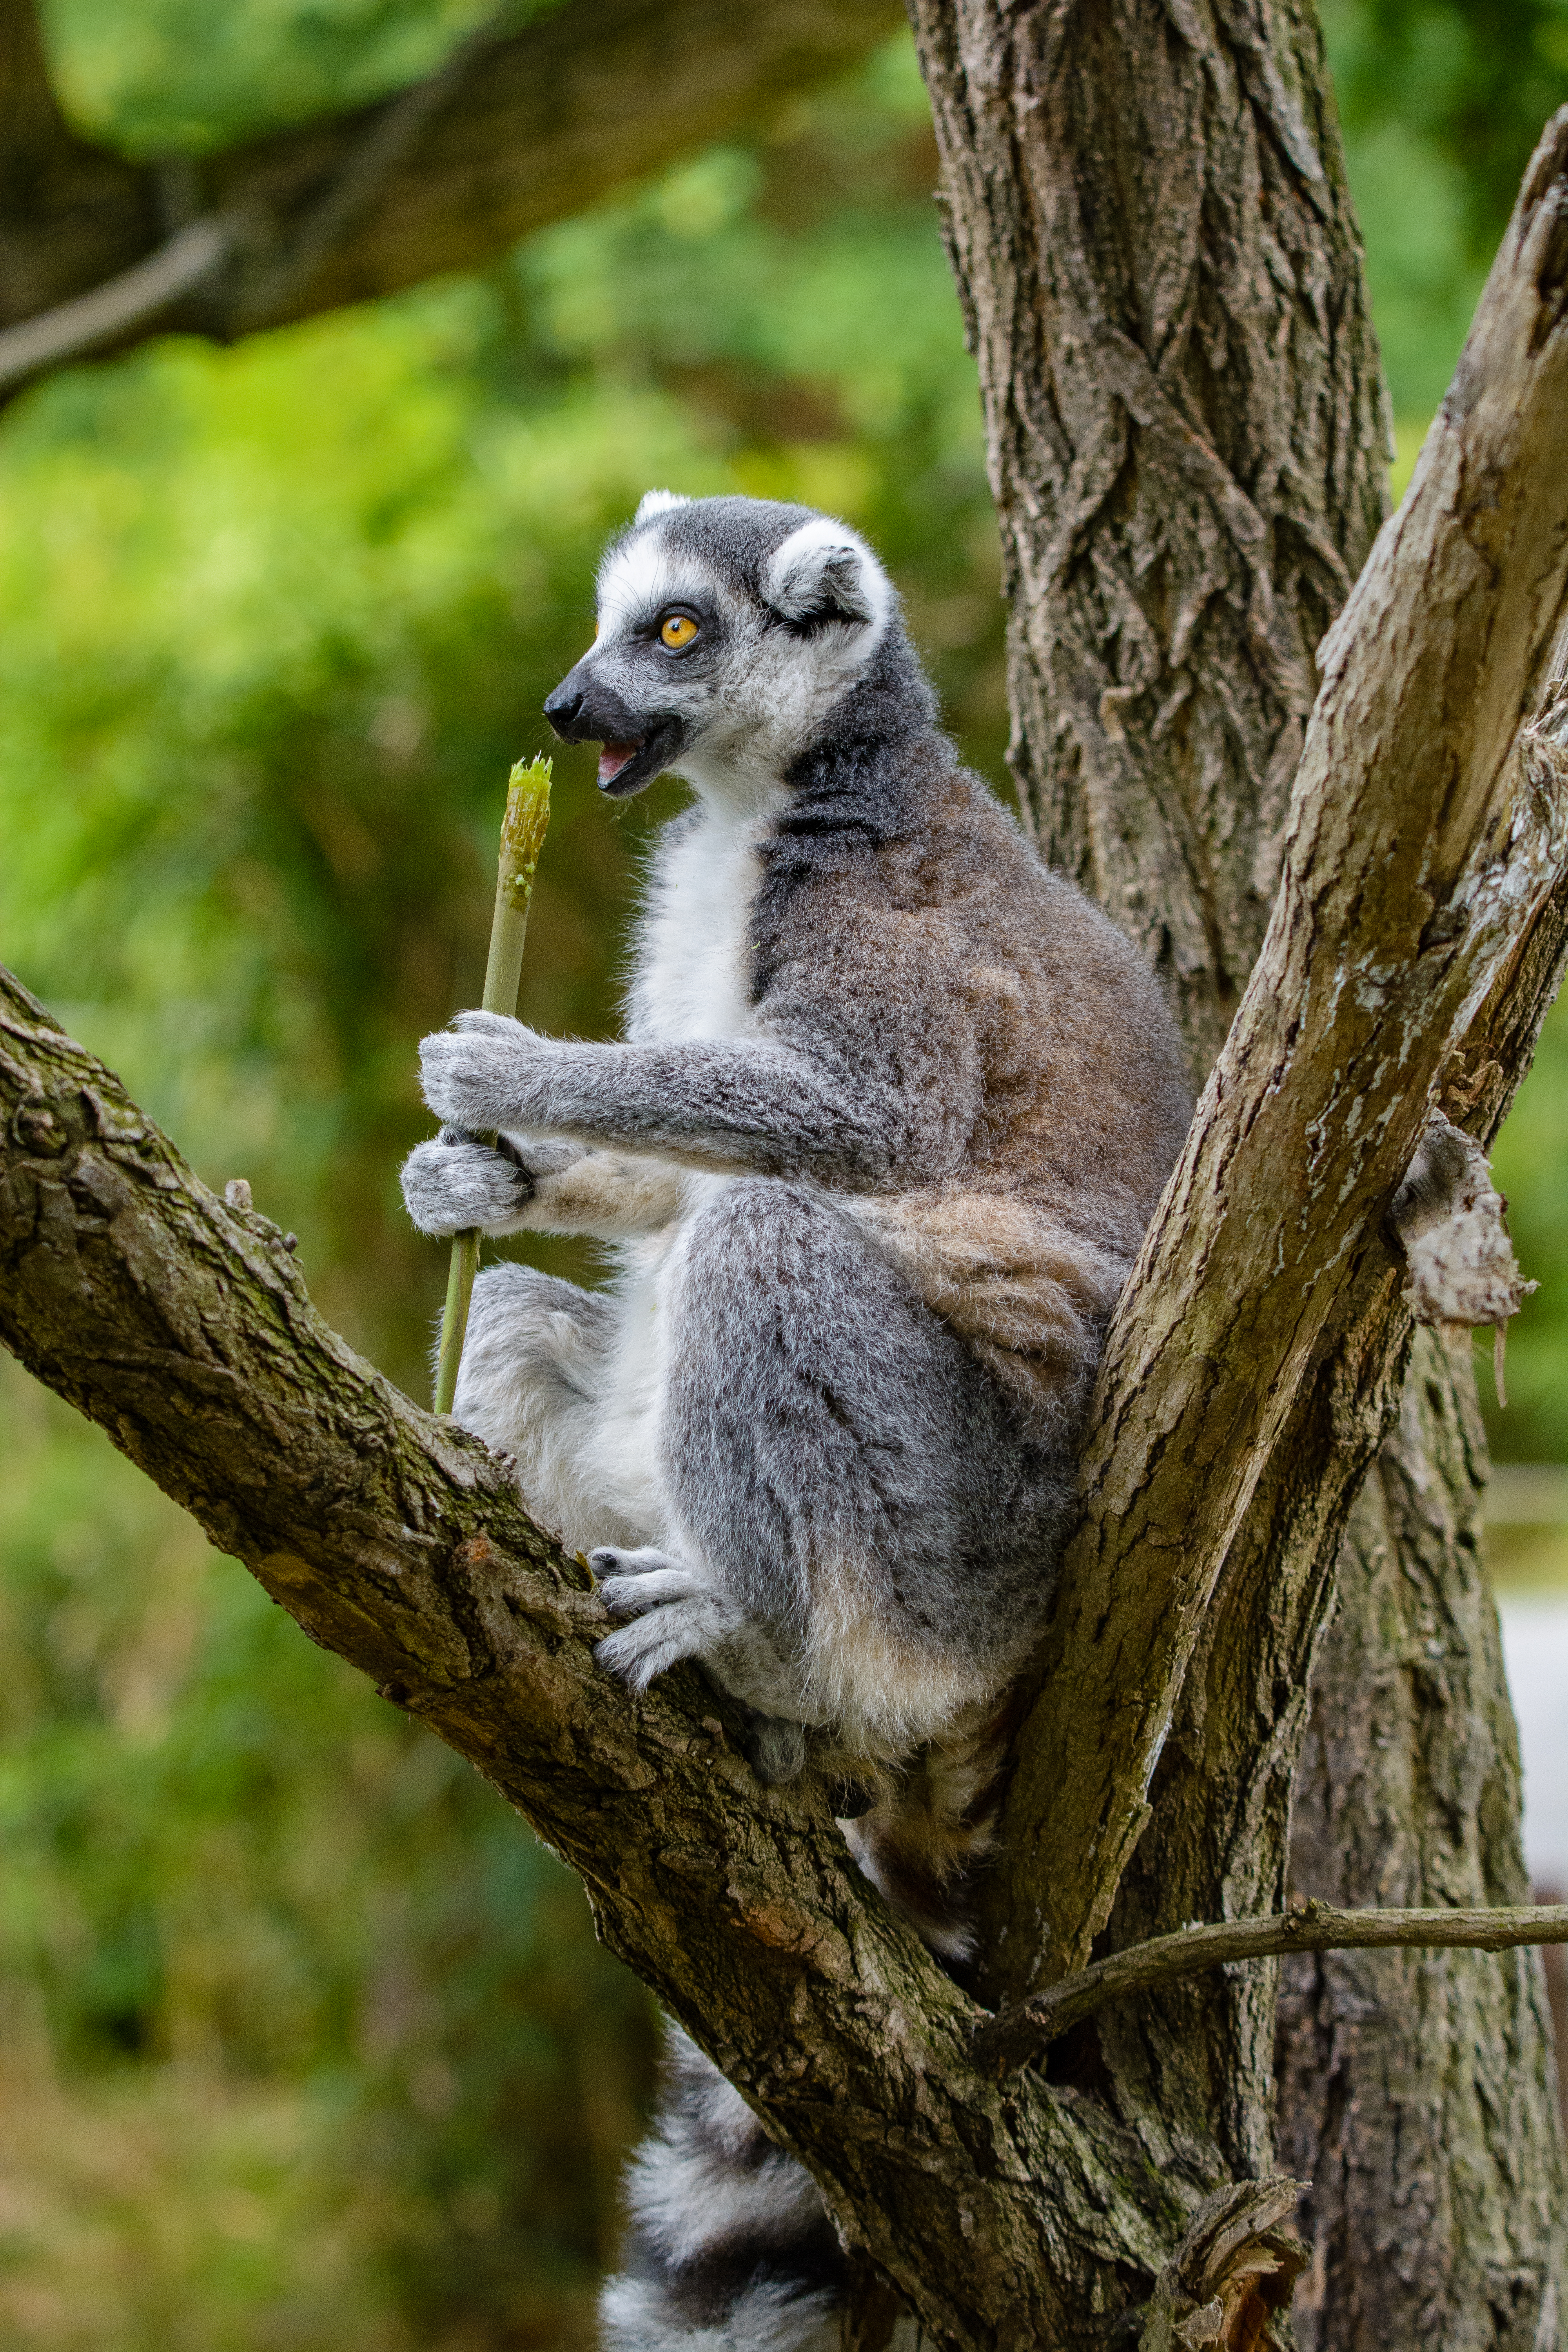 95142 download wallpaper Animals, Lemur, Wood, Tree, Snack, Relaxation, Rest, Food screensavers and pictures for free